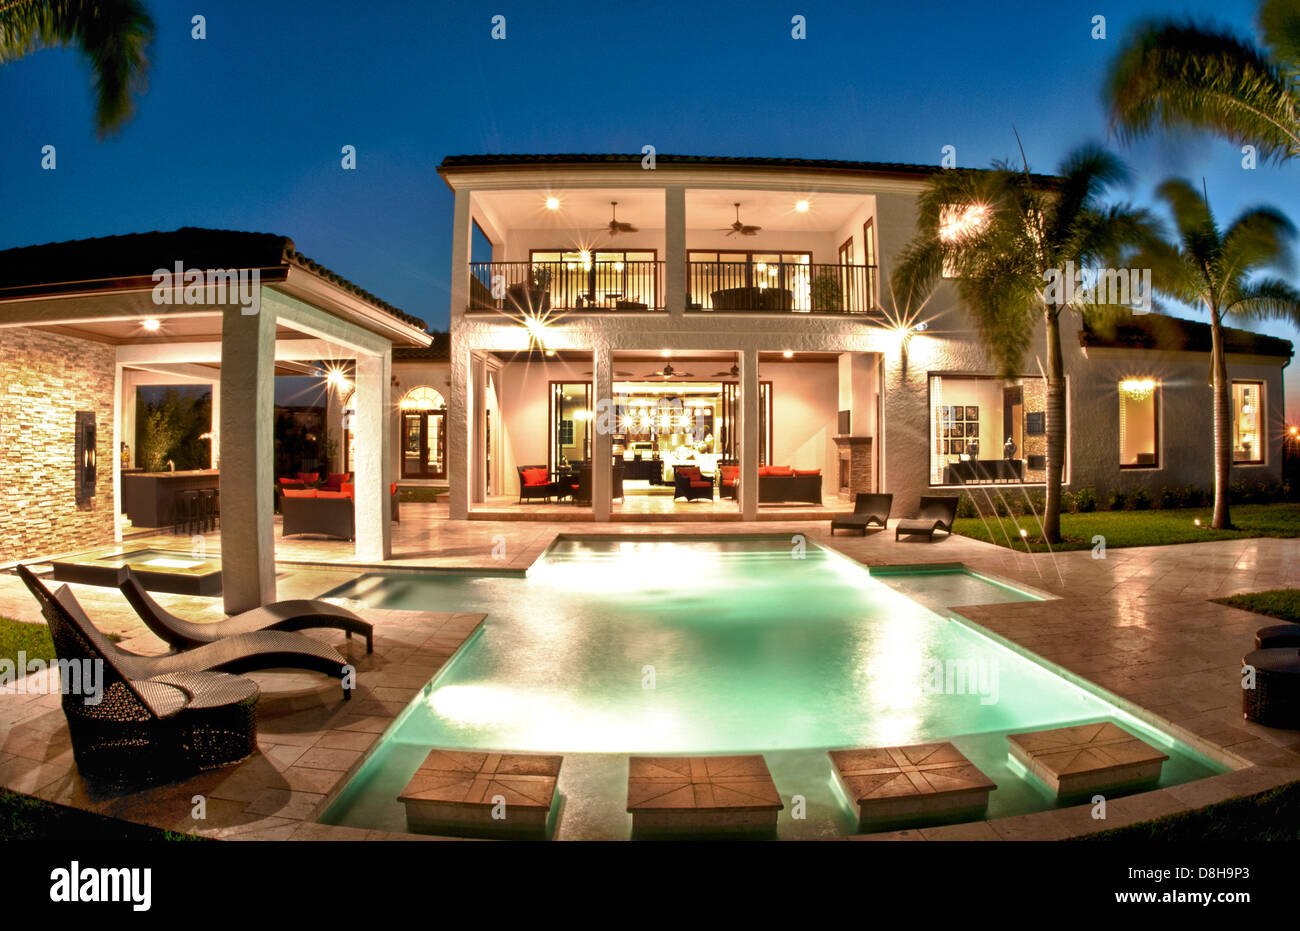 Luxury Home Worth Several Million Dollars Pool At Twilight With Palm Trees  And Blue Sky